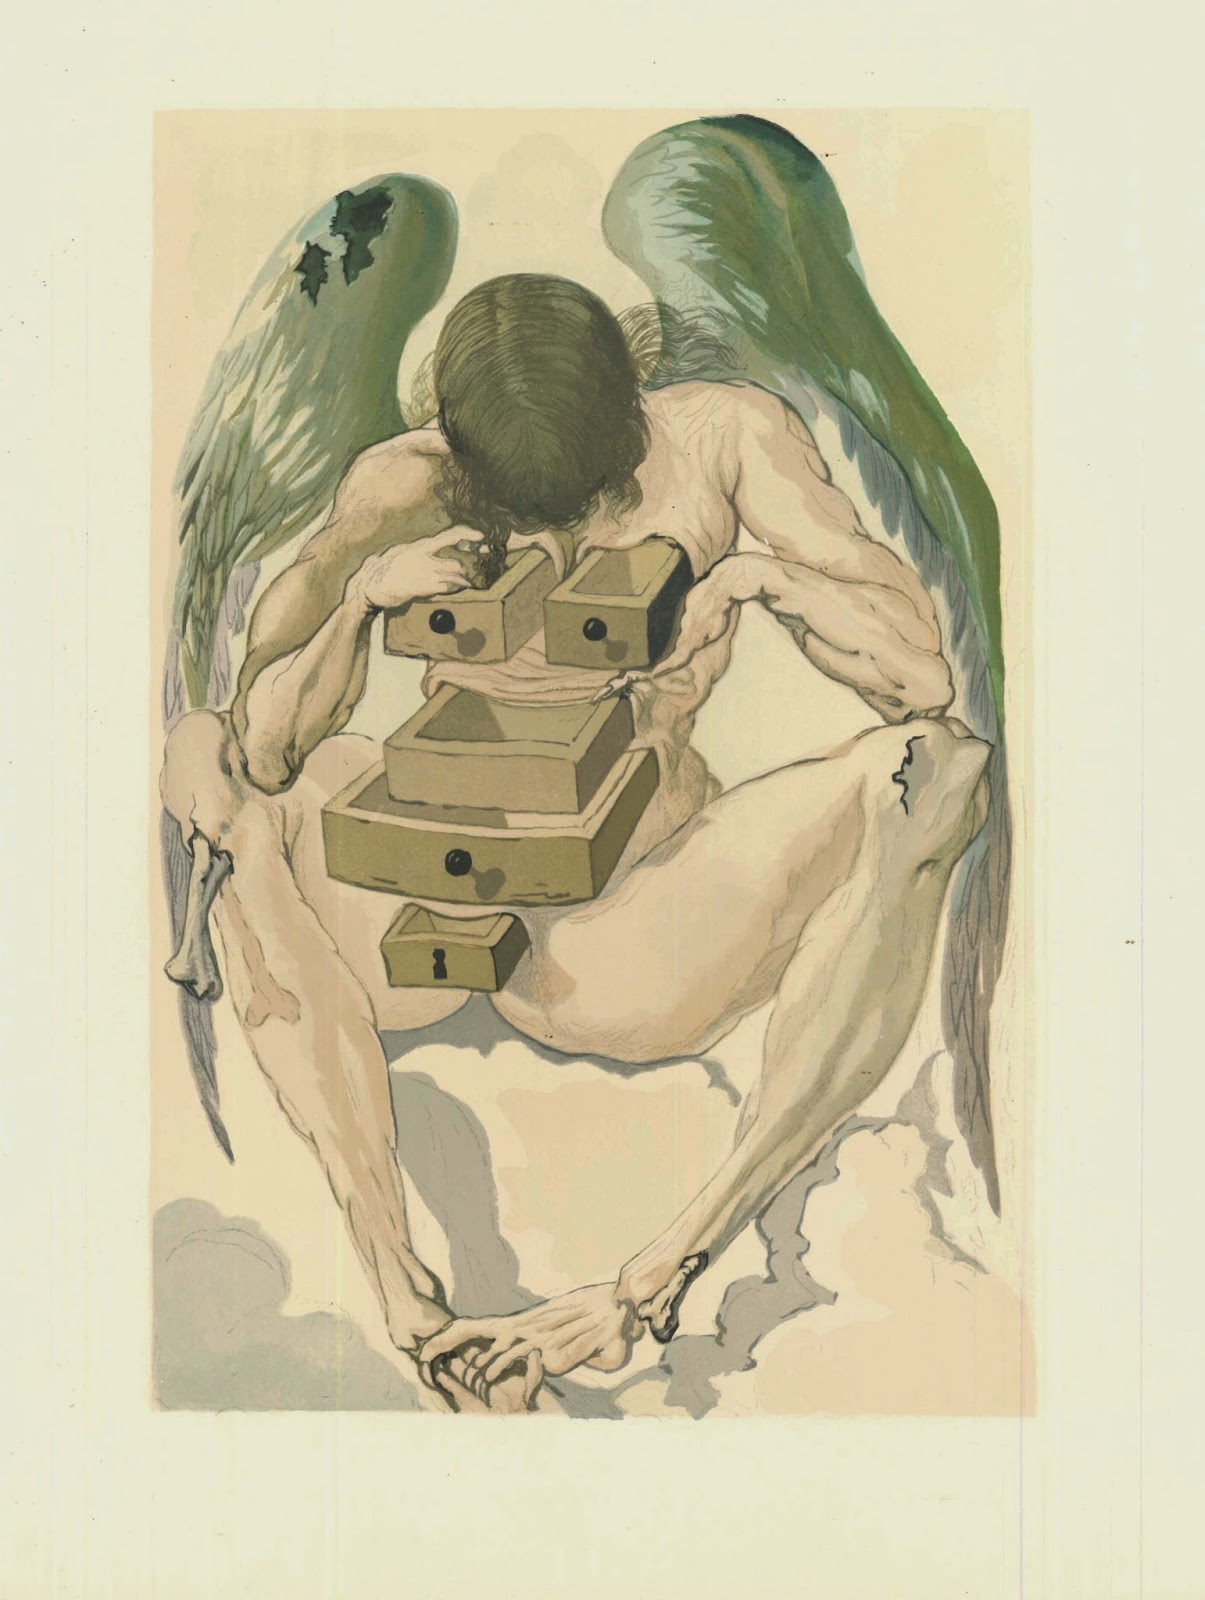 A watercolor illustration of a seated angel looking into the five open drawers emerging from its body.